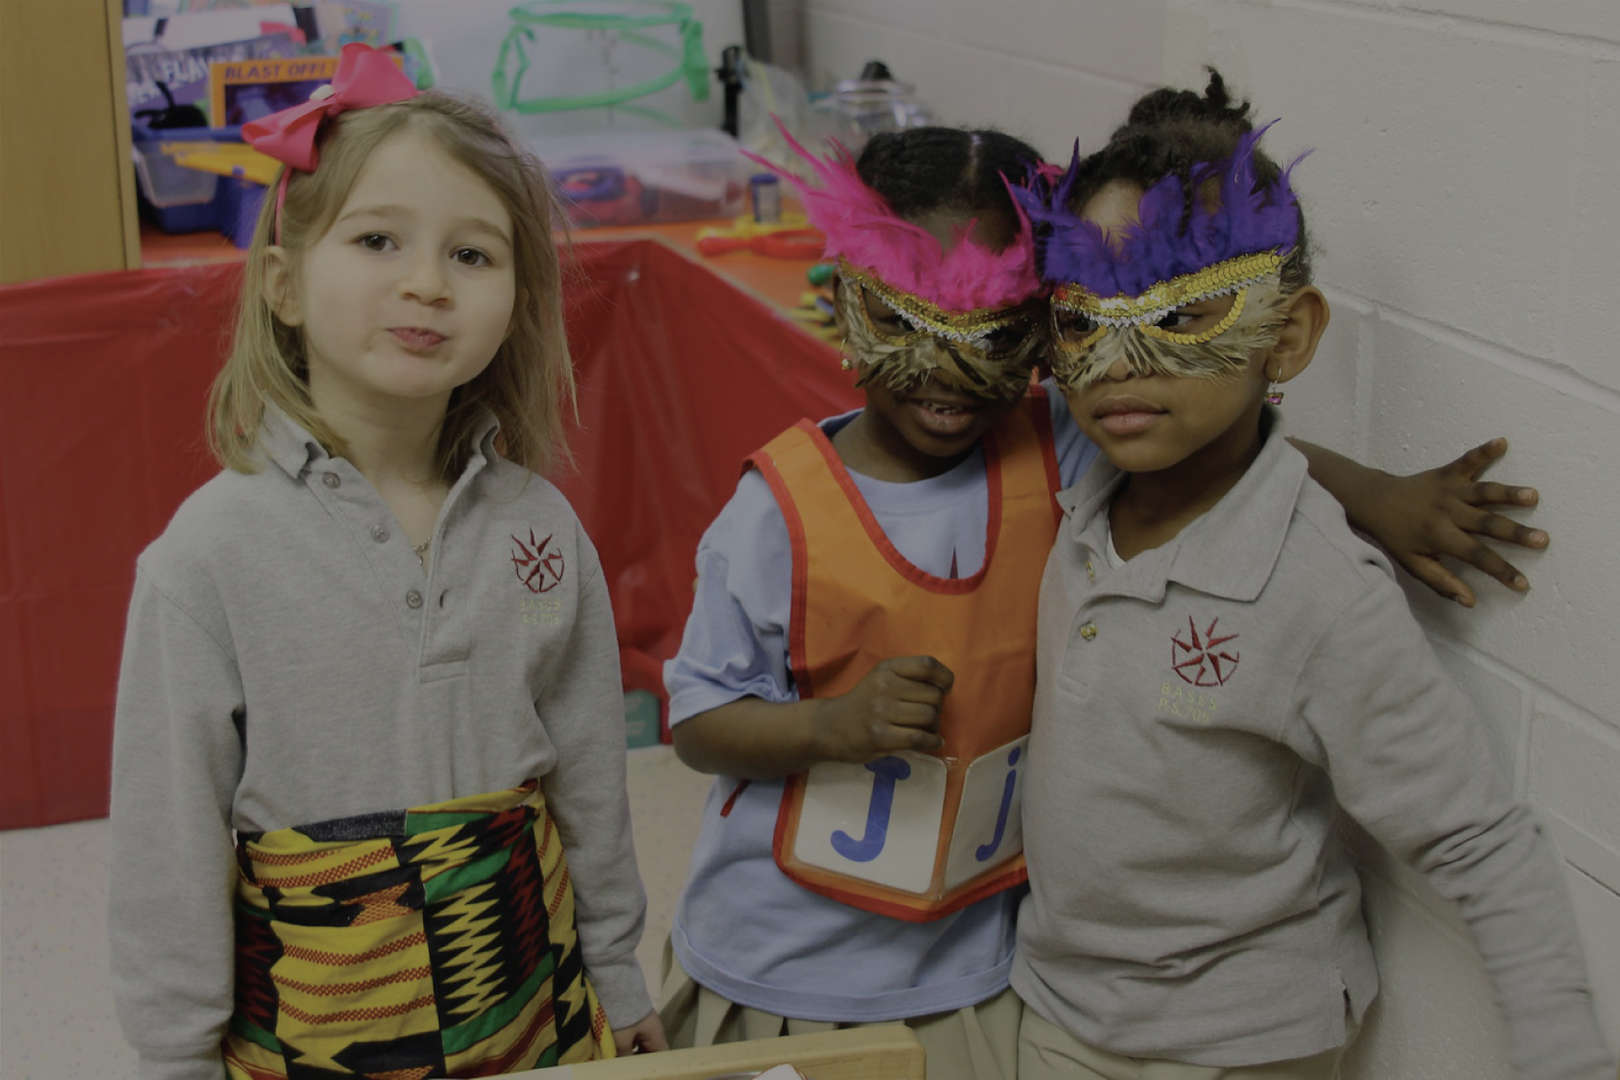 Children dressed up in masks